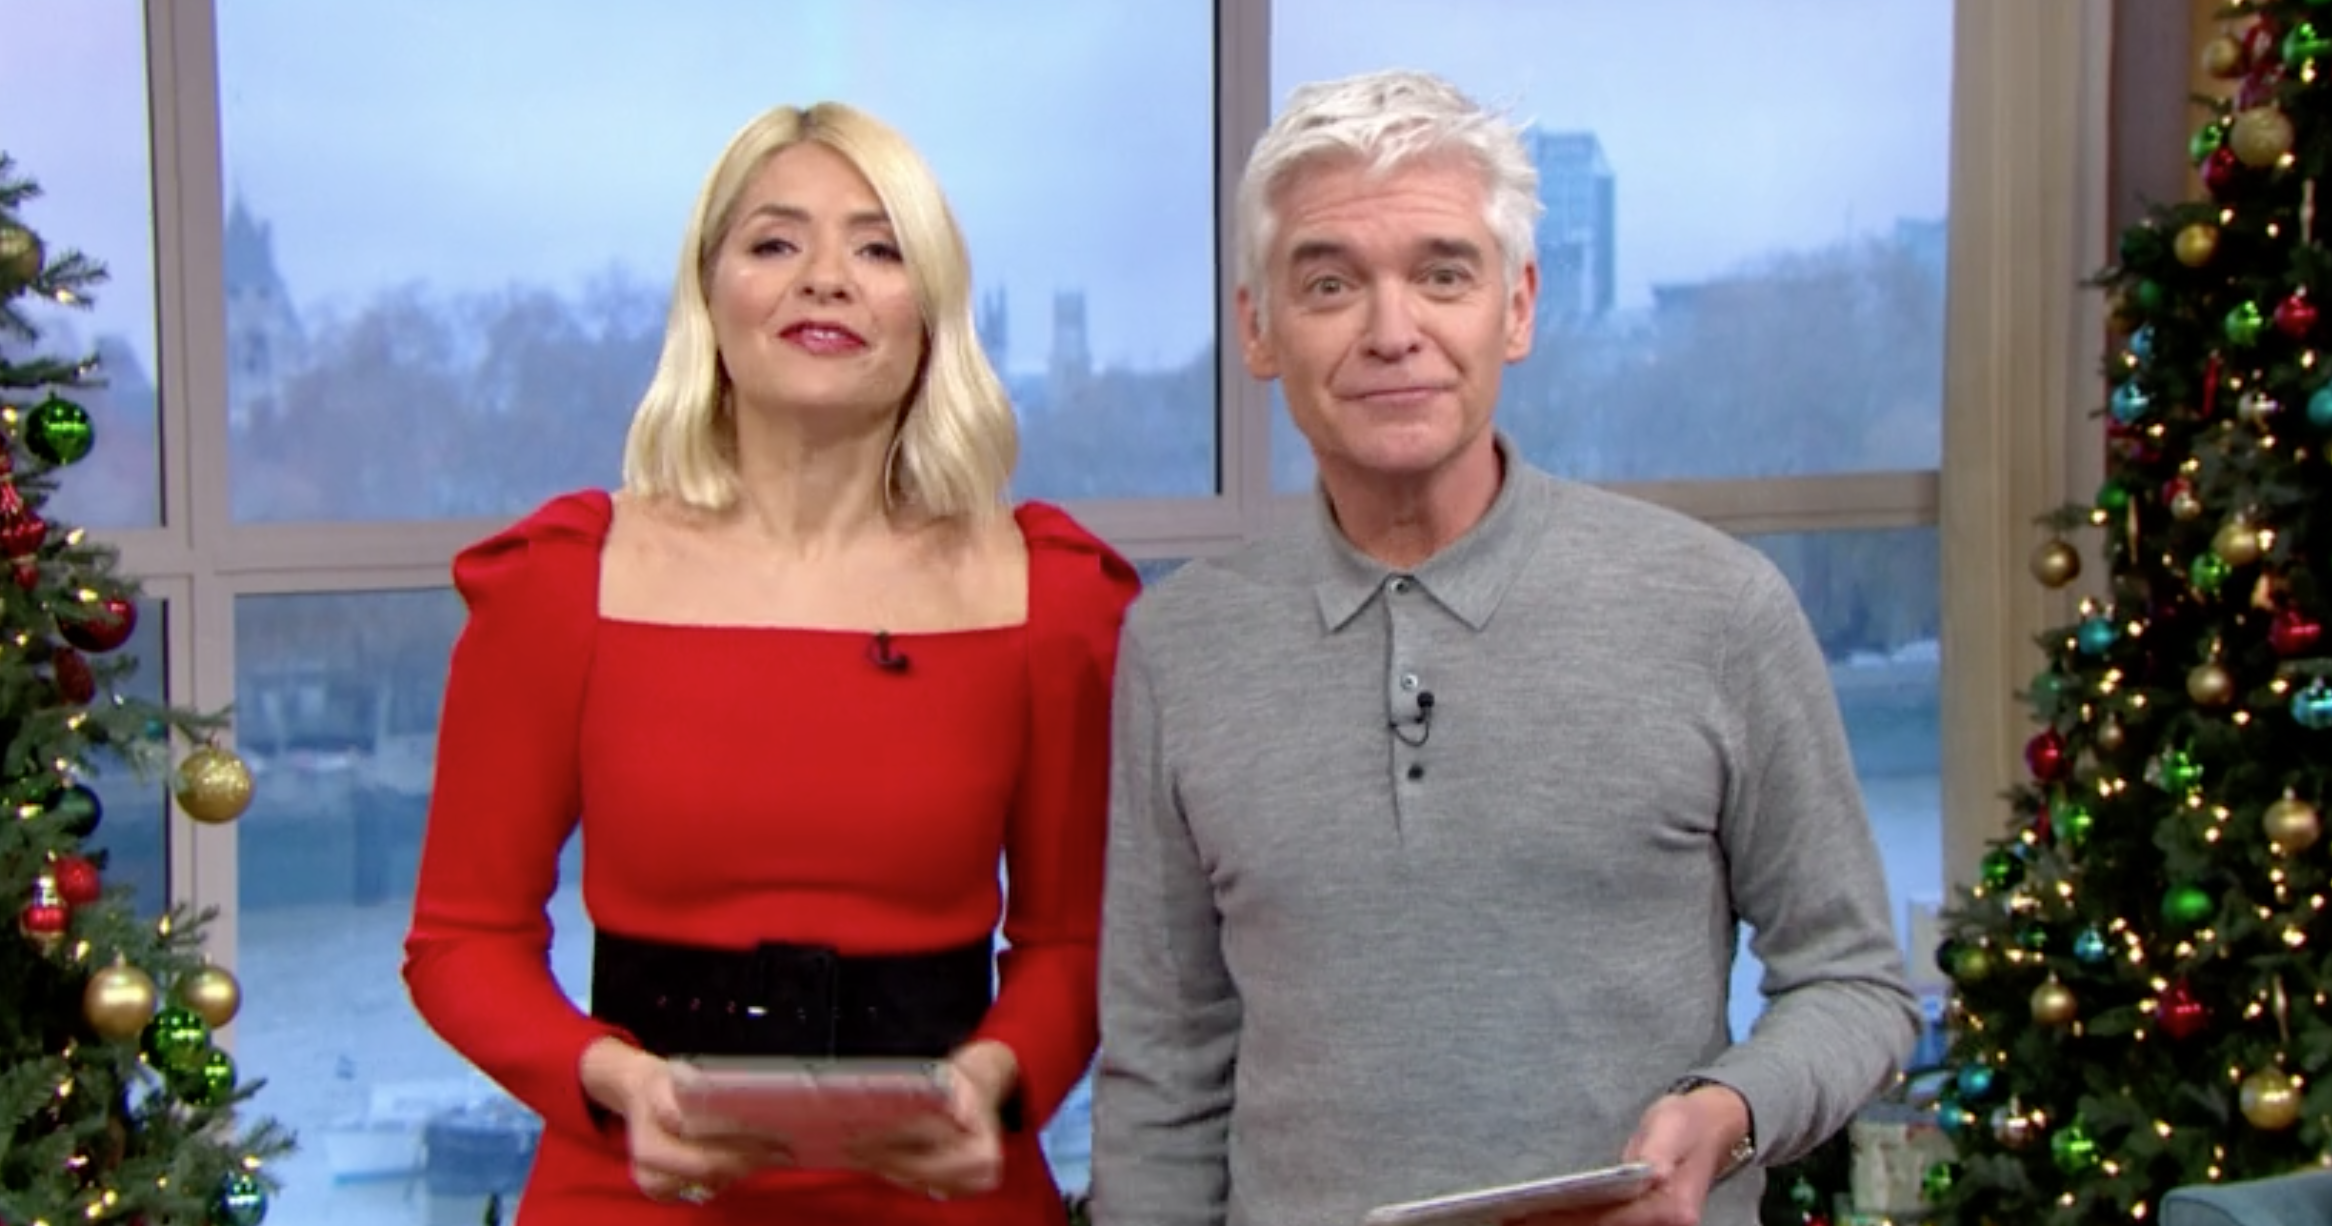 Phillip Schofield finally breaks his silence amid Ruth Langsford allegations